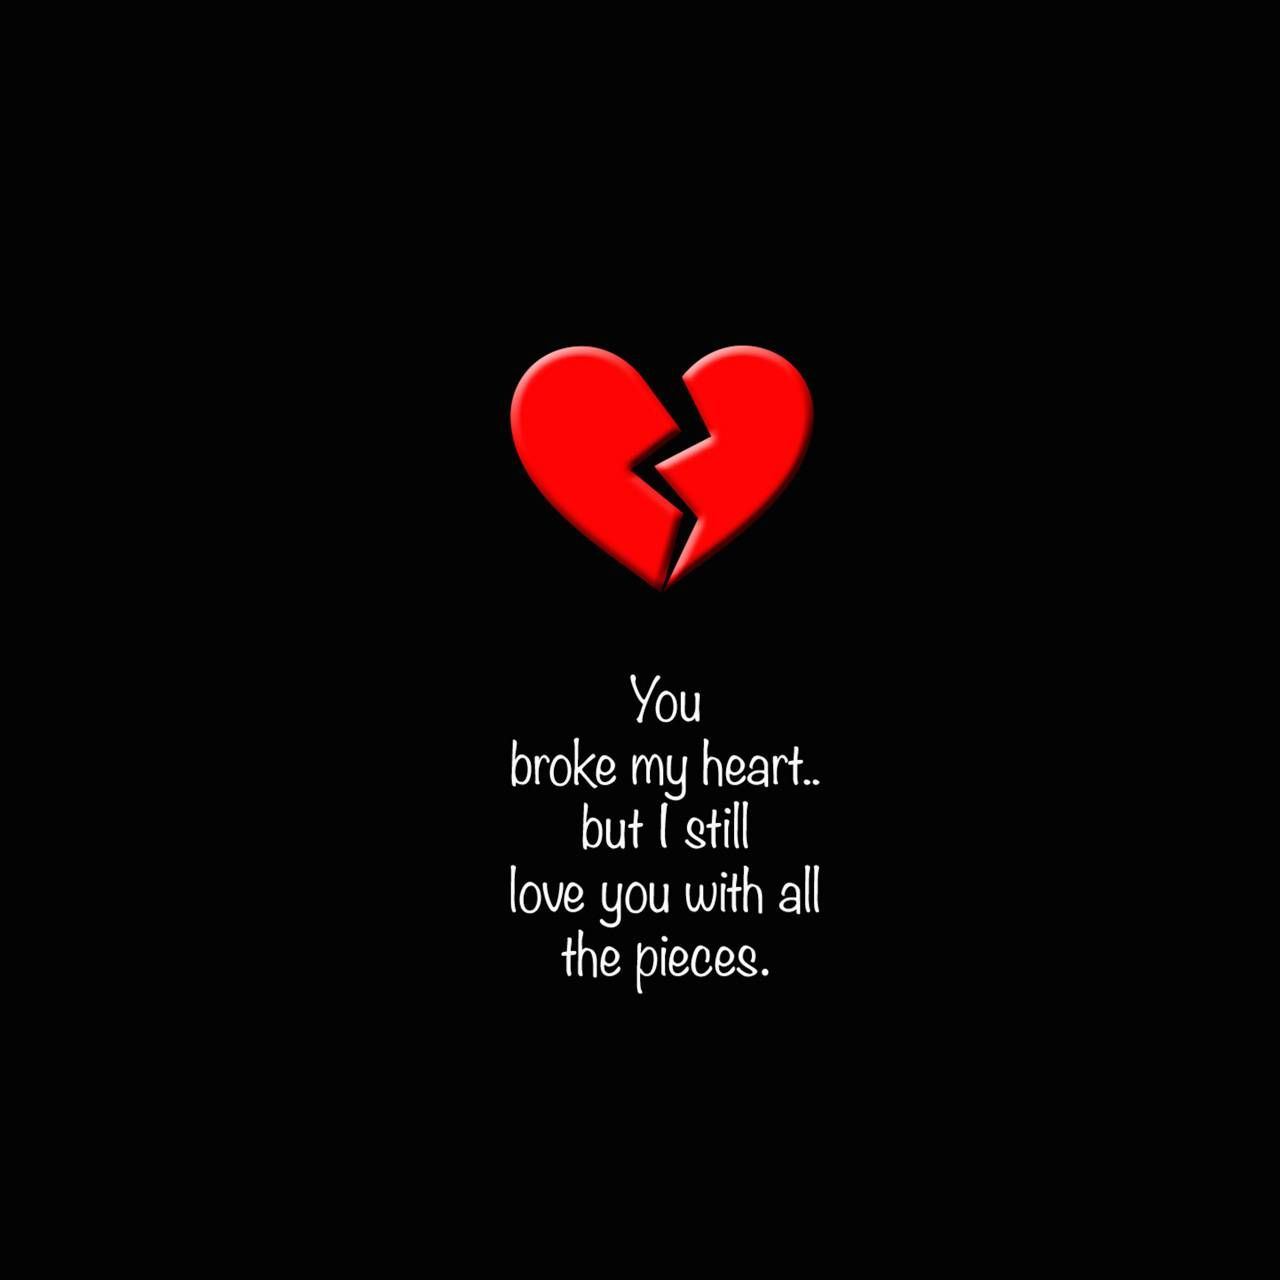 Download Broken Heart Wallpaper By Xrscorpio 47 Free On Zedge Now Browse Millions Of Popular Black Wa In 2020 Broken Heart Wallpaper Broken Heart Heart Wallpaper